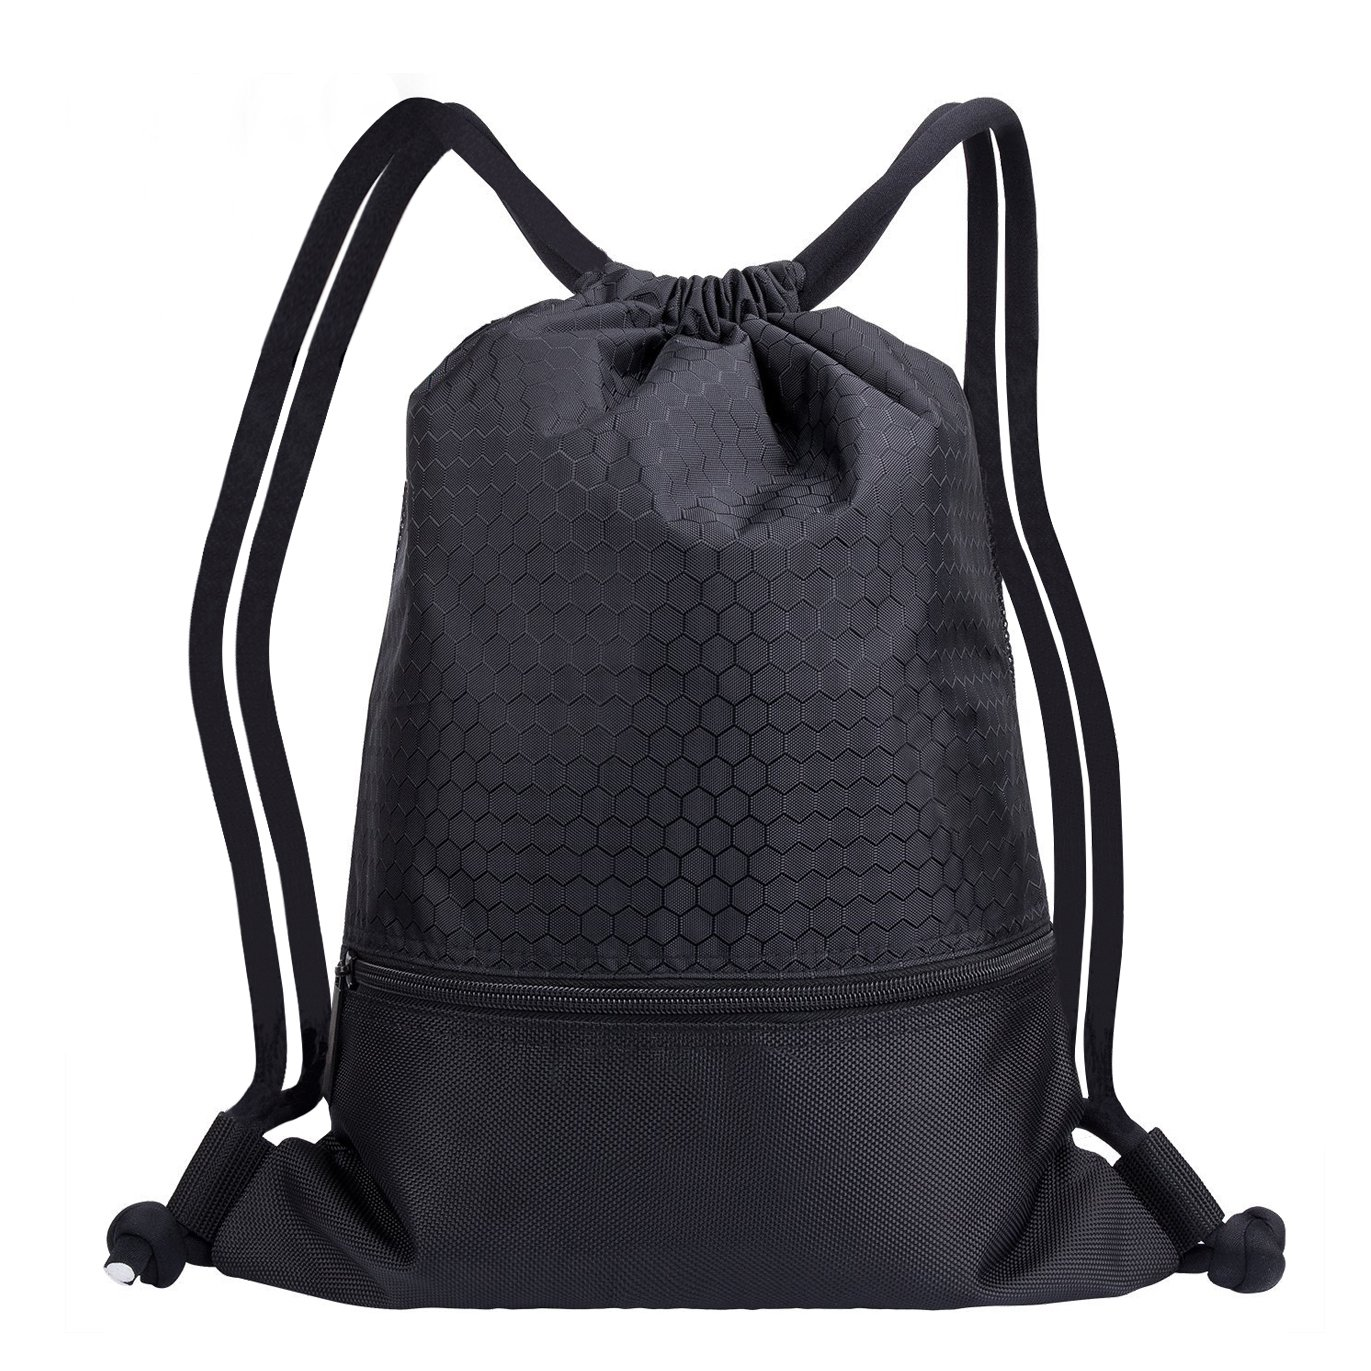 Drawstring Bag With Pockets Waterproof Sports Gym Bag with Large Capacity (Black)